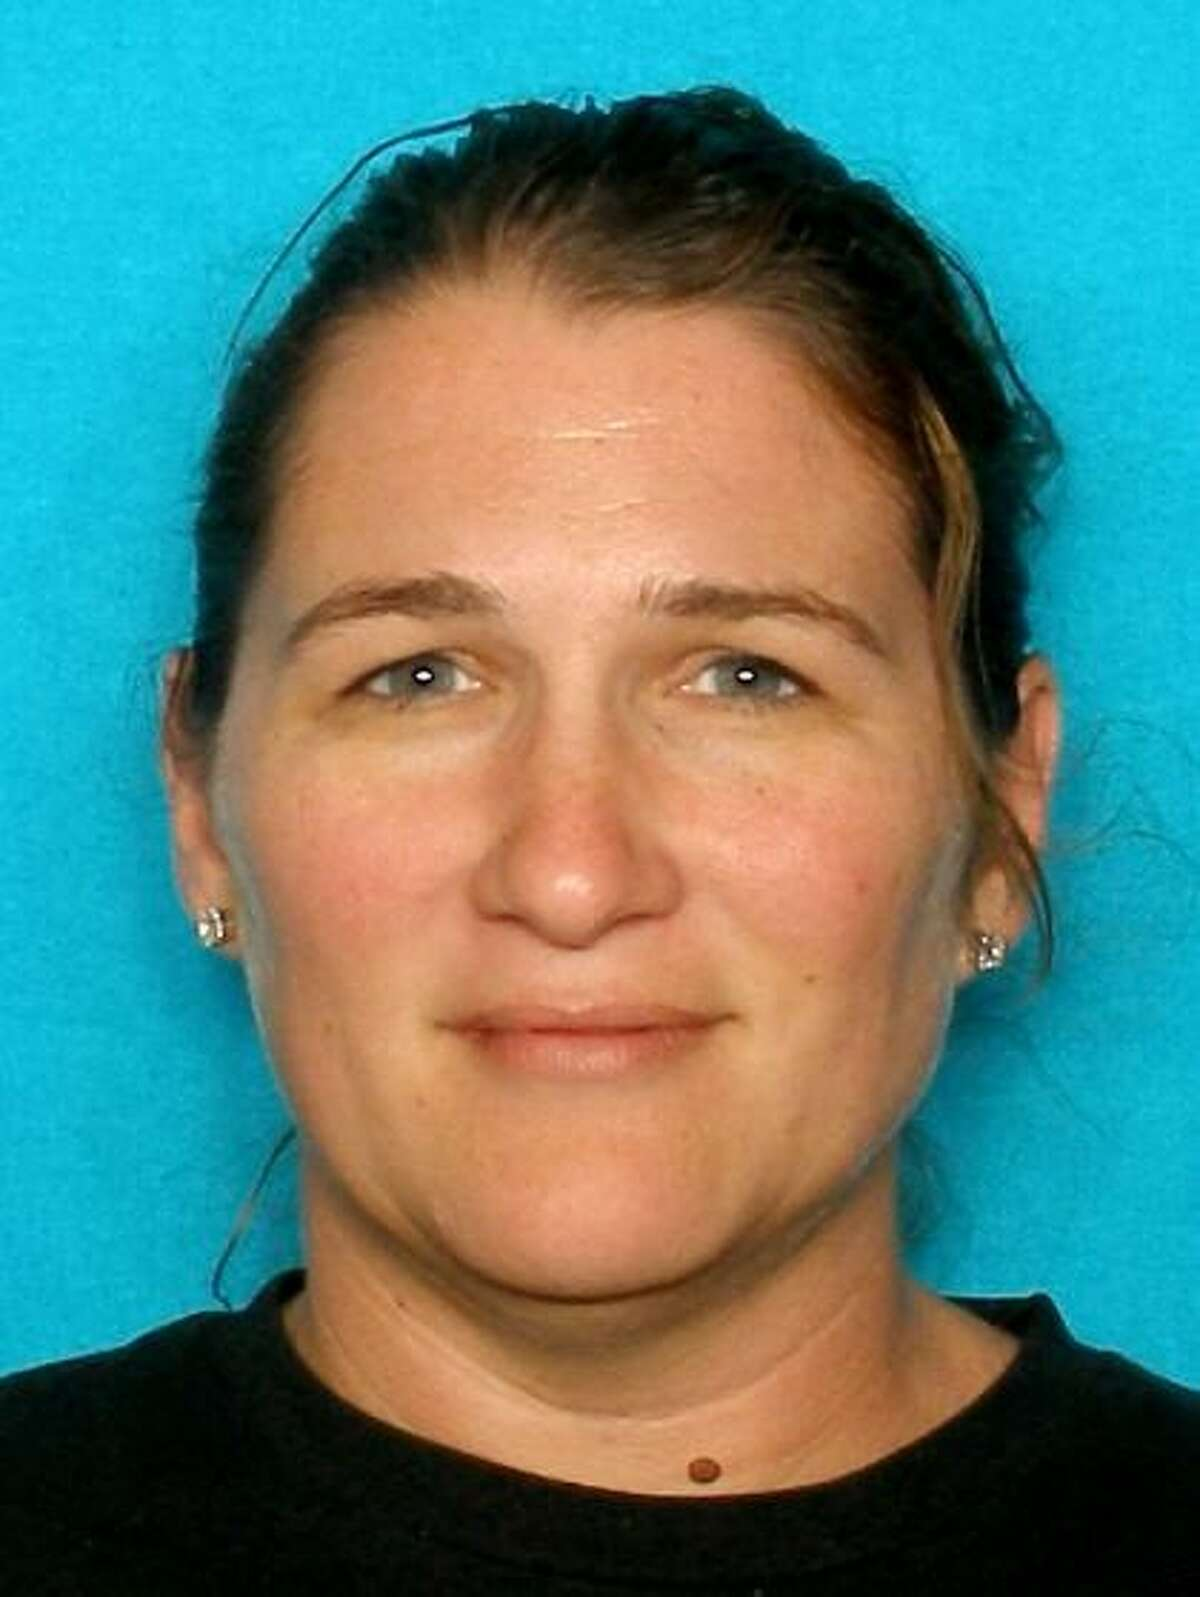 """COUGHRAN, Callie DailWhite/Female DOB: 06/13/1974Height: 5'09"""" Weight: 200 lbs.Hair: Brown Eyes: BrownWarrant: # 121212920 CapiasTheft of LivestockLKA: Red Bluff., La Porte."""